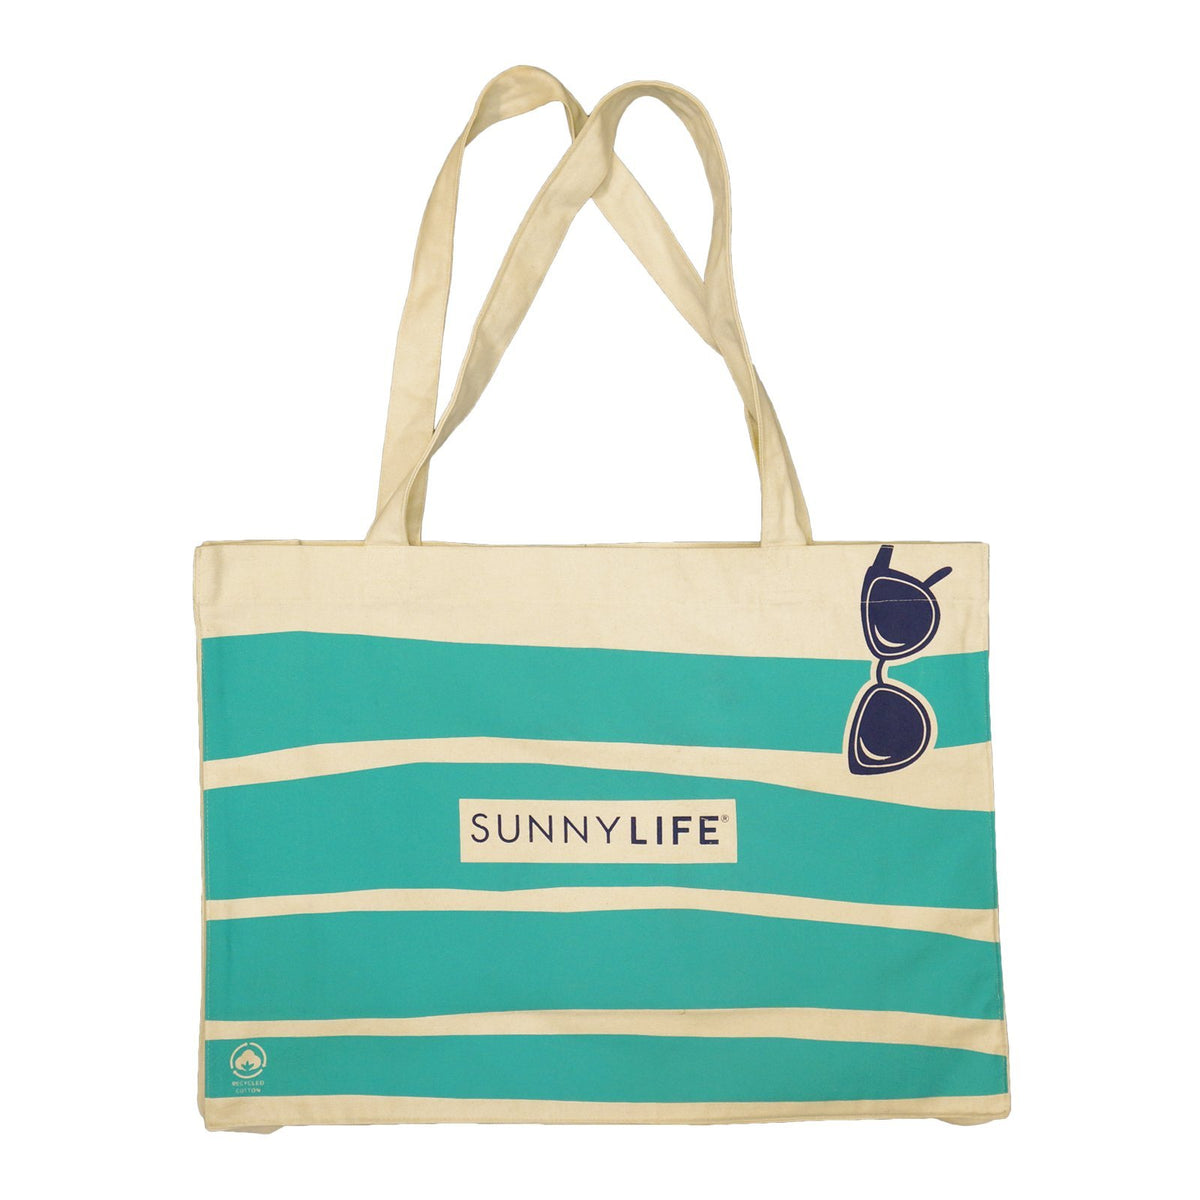 Sunnylife | Tote Bag | Summer